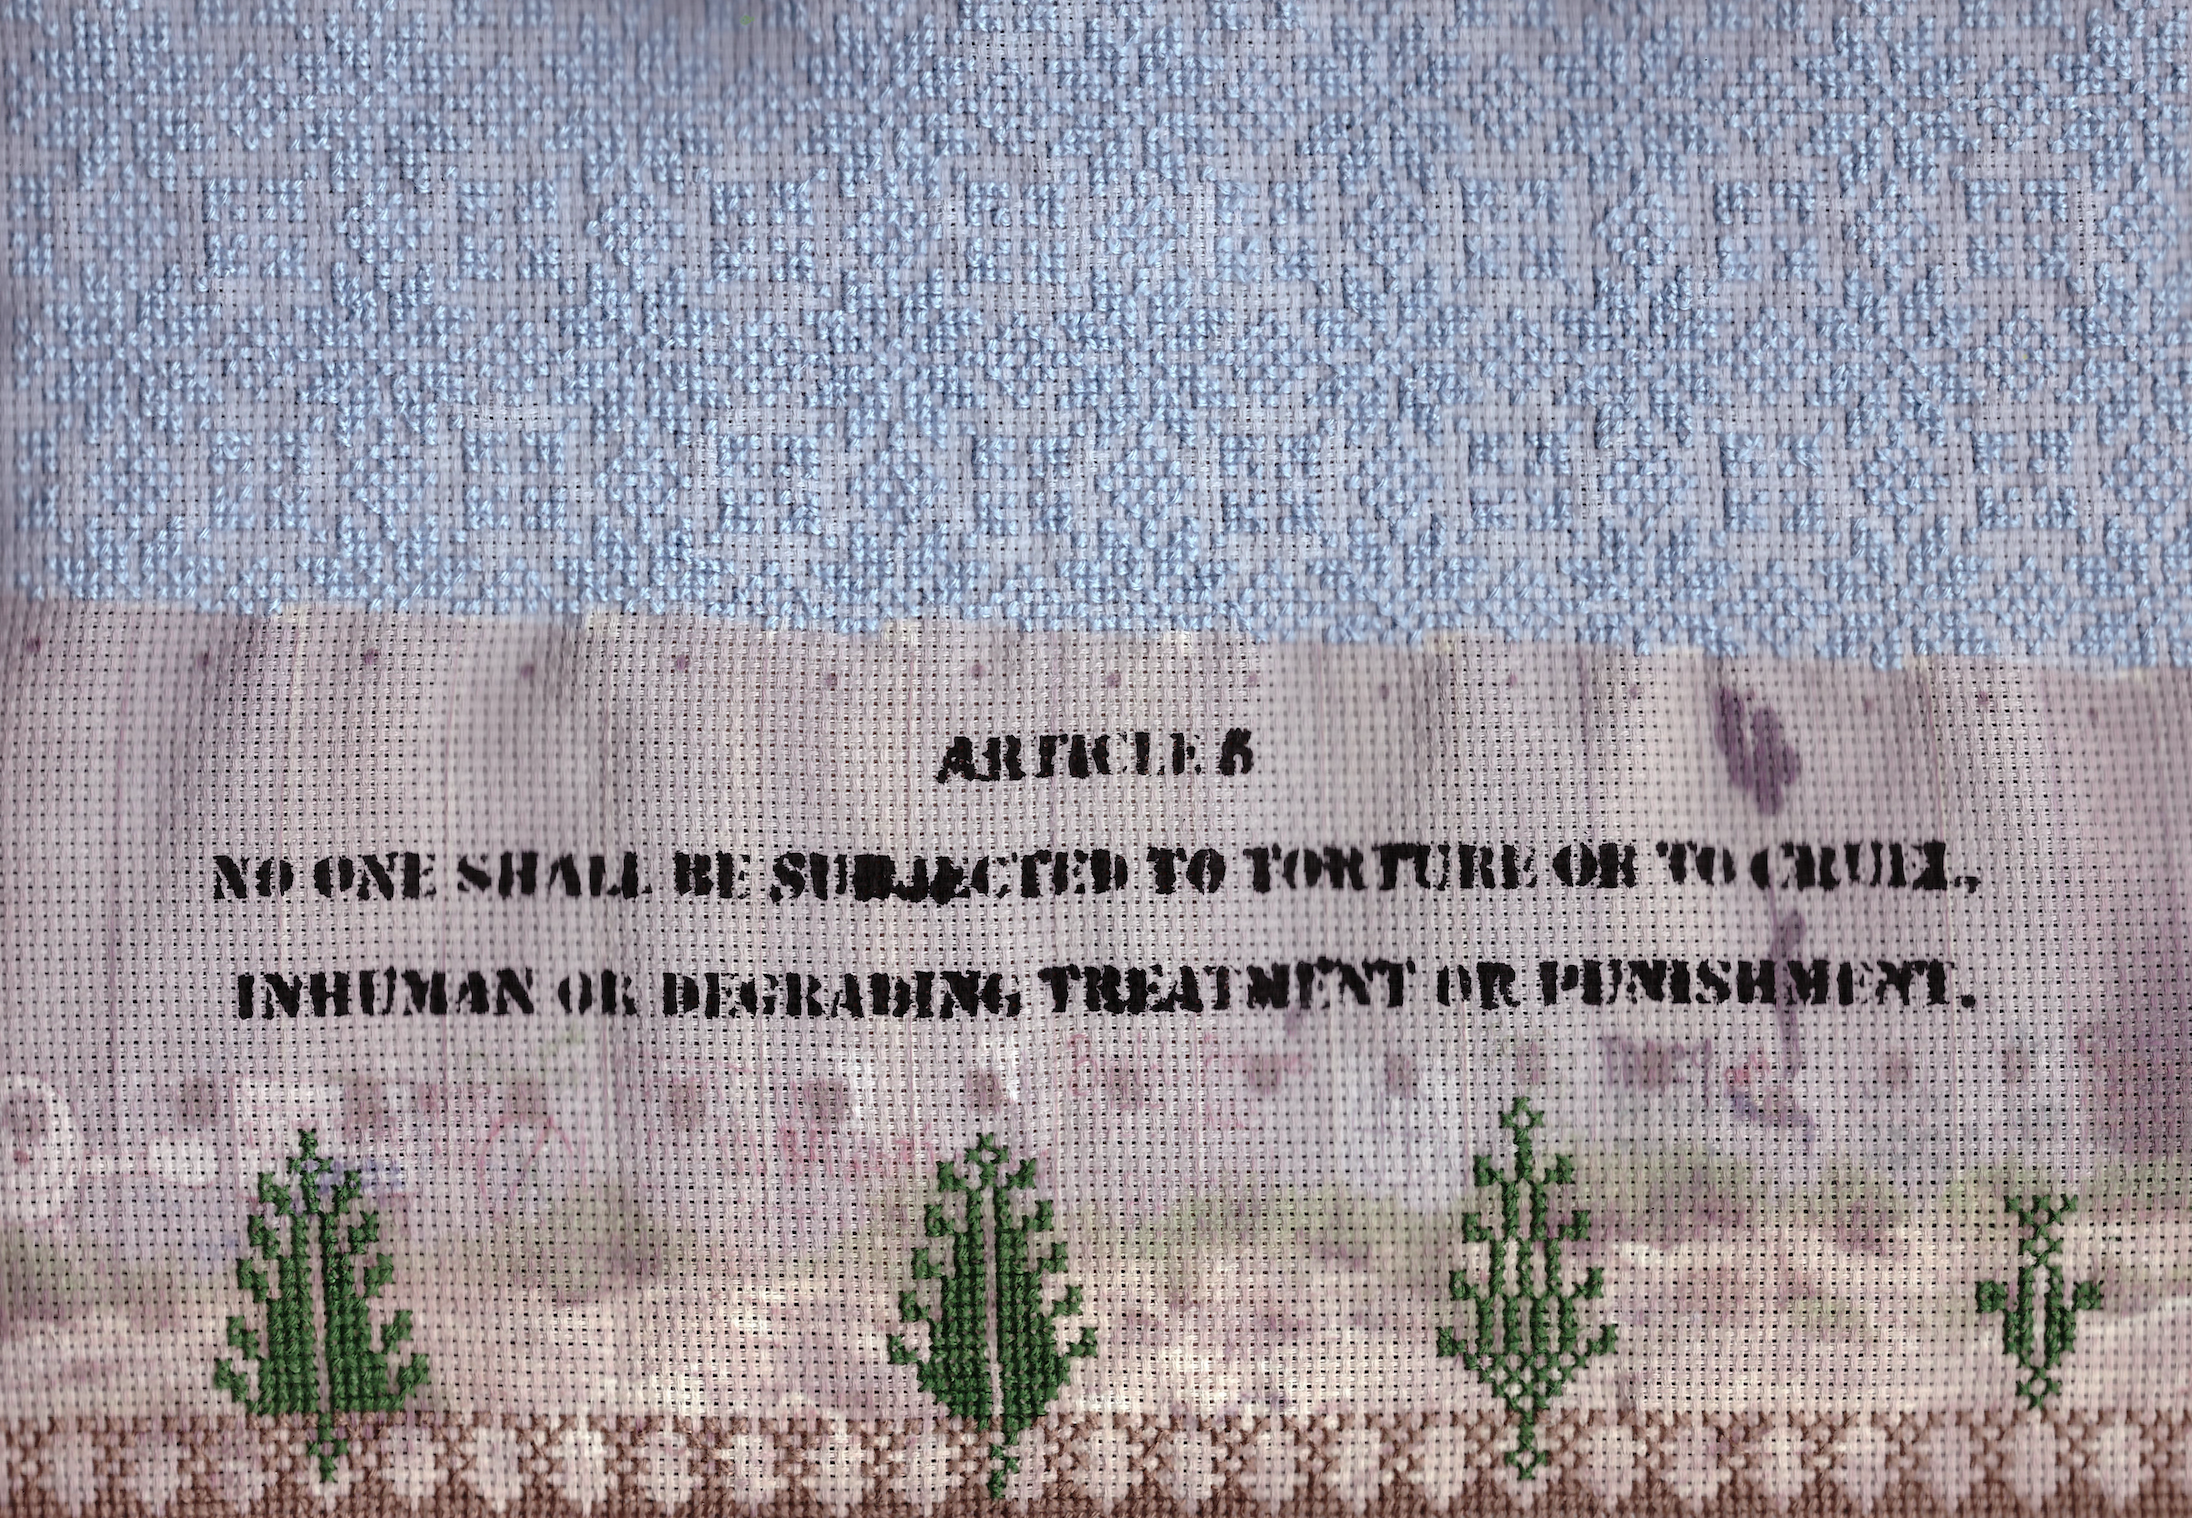 """ARTICLE 5  mixed media on embroidery fabric  """"No one shall be subjected to torture or to cruel, inhuman or degrading treatment or punishment.""""  This is my block in the UDHR Quilt project led by Tal Fitzpatrick and Stephanie Dunlap to celebrate the Universal Declaration of Human Rights and promote awareness of violations happening all over the world. On my block of the quilt, I have hand embroidered the traditional Palestinian motif of the star of Bethlehem across the sky. Article 5 is stenciled on the separation wall representing the significance of graffiti and street art as a tool of communication in the public sphere in Palestine. More traditional Palestinian embroidery, such as Cyprus trees and 'the walls of Jerusalem' motifs run along the bottom of the panel under the wall representing the Palestinian land. Although Israel fails to comply with most of the articles of the Universal Declaration of Human rights, the violation of Article 5 is a succinct summation of the Israeli occupation of the Palestinian people on their native land since 1948.  Now on view at the Museum of Australian Democracy. It is included on one of the four quilts of the """"The #UDHRquilt Project: Craftivism, Quilts & Human Rights"""" exhibition.   https://quilts.moadoph.gov.au    http://talfitzpatrick.com/udhr-craftivism-project"""